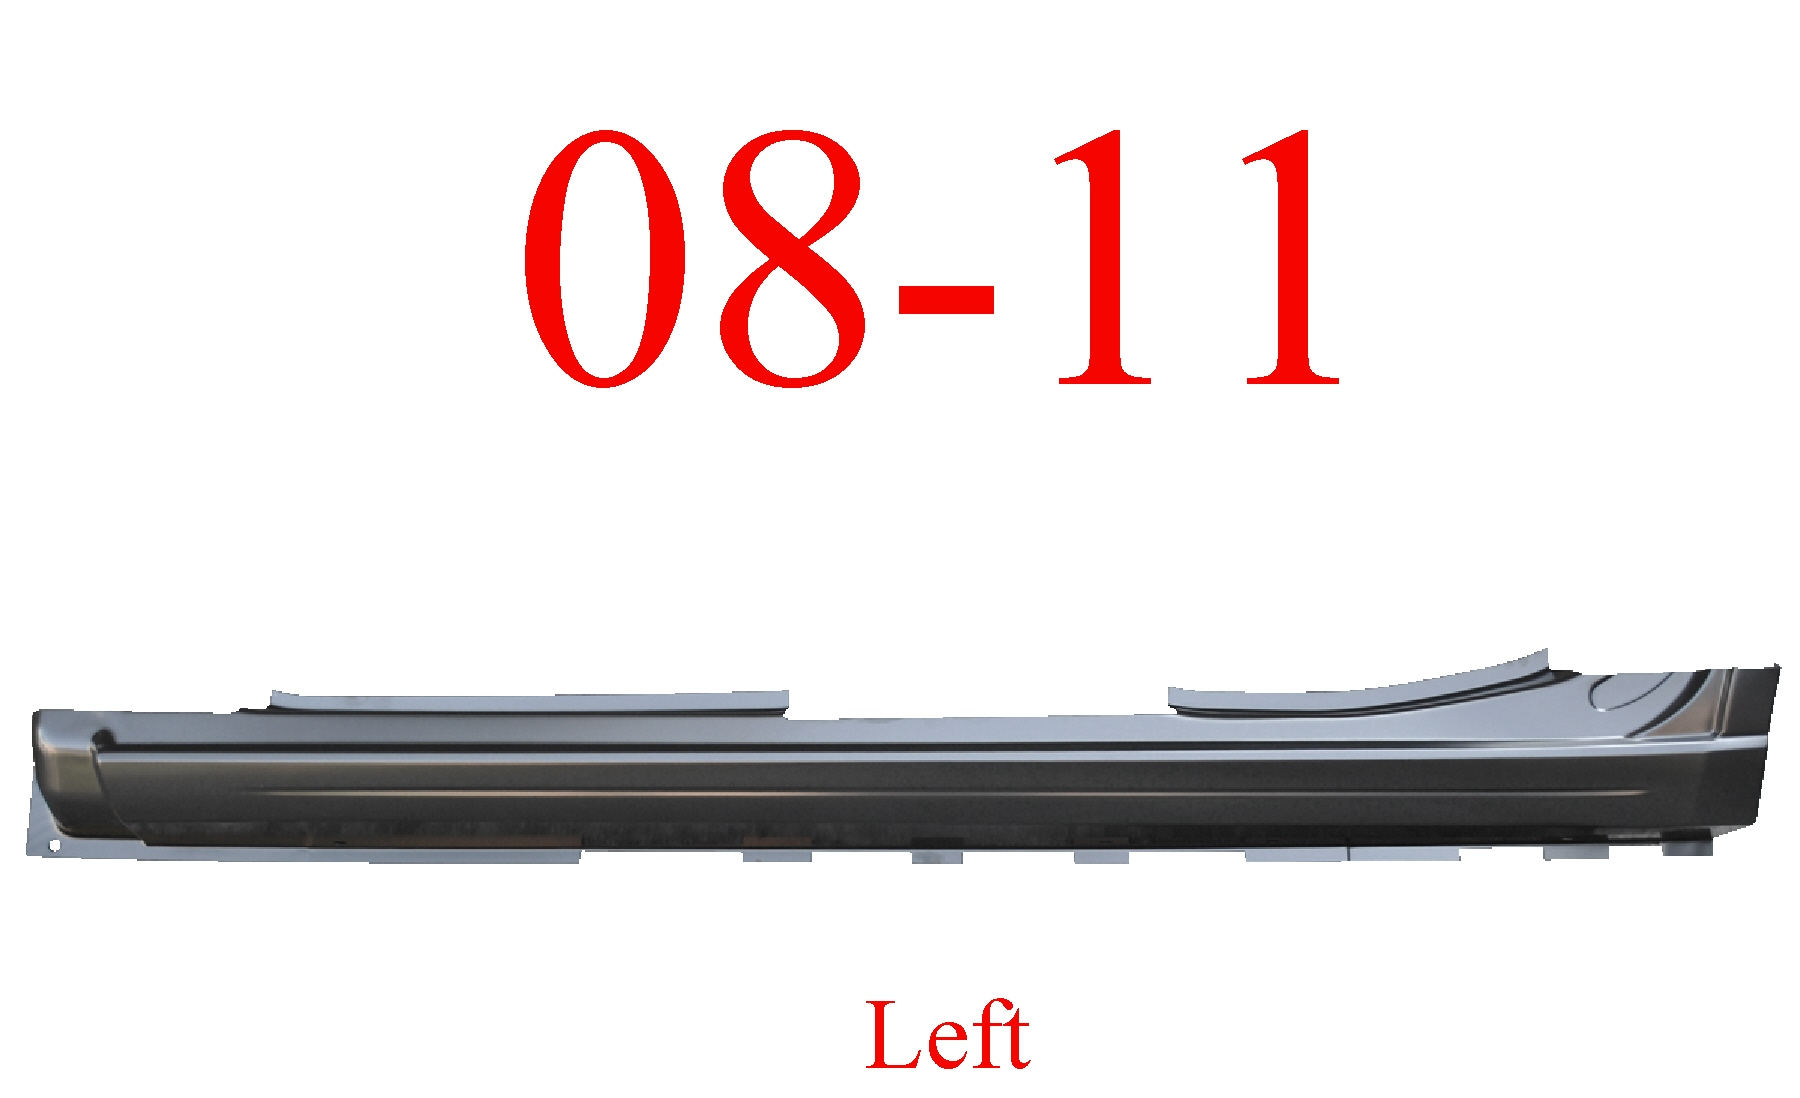 08-11 Ford Focus Left Extended Rocker Panel 4 Door